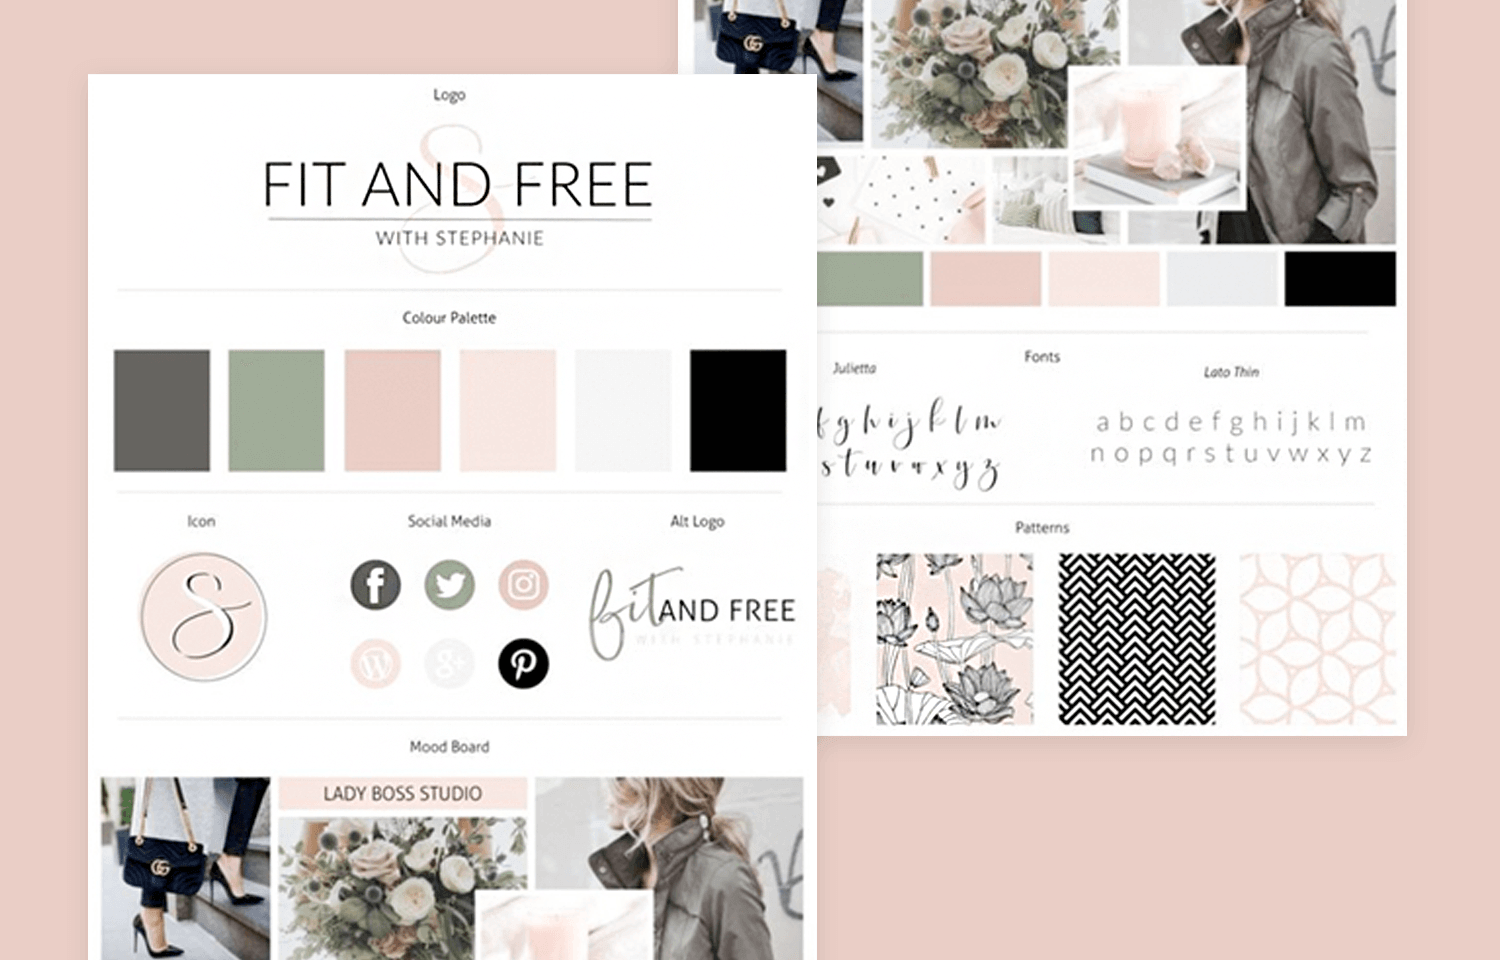 Website mood board examples - Fit and Free Portfolio